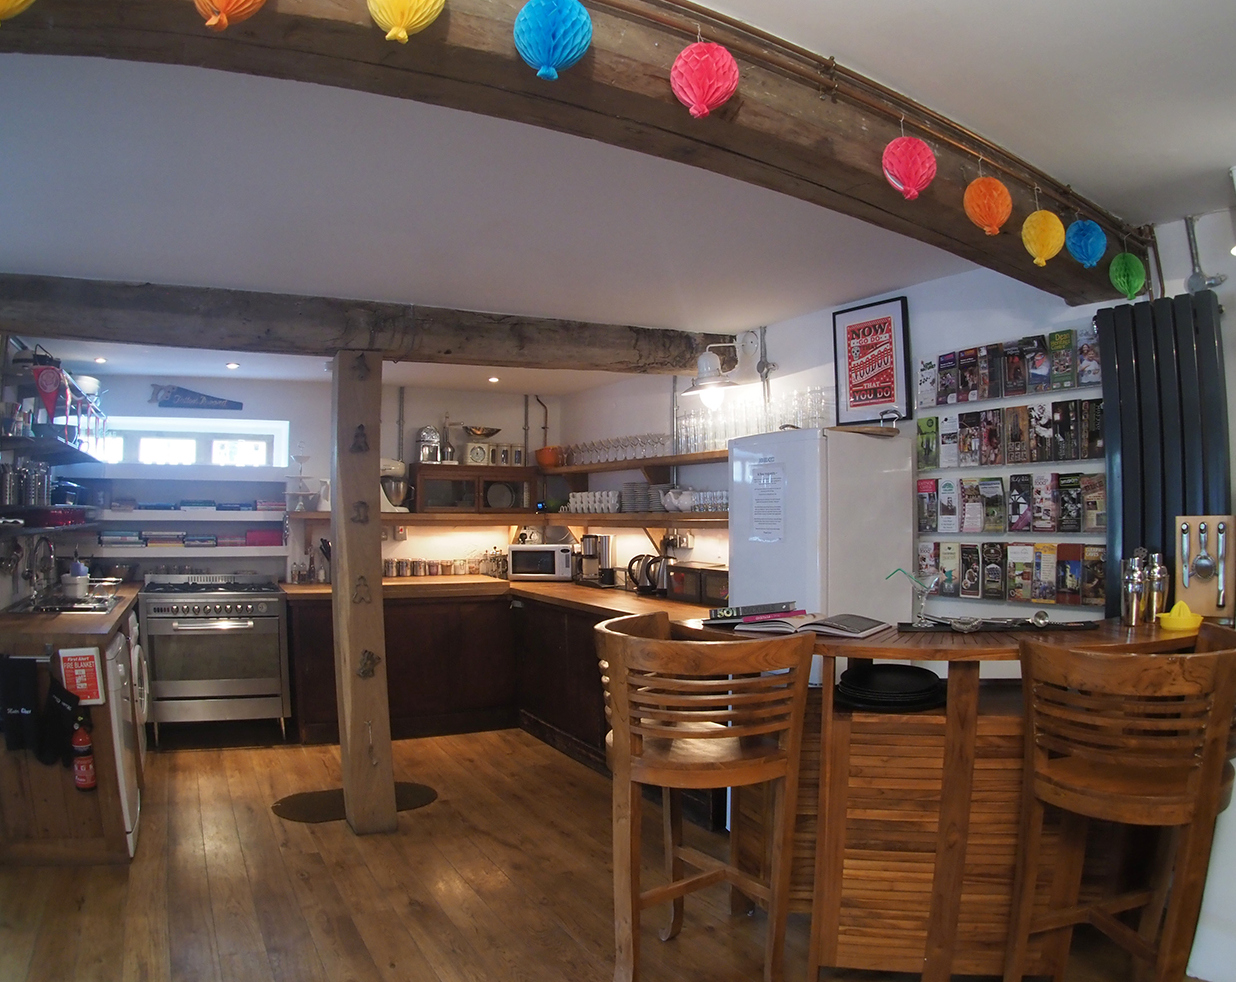 PROFESSIONAL, FULLY EQUIPPED KITCHENS AVAILABLE TO HIRE AT MILL END MITCHELDEAN.  Perfect for Private dining, cookery Classes, product launches, photography/film shoots and demonstrations.